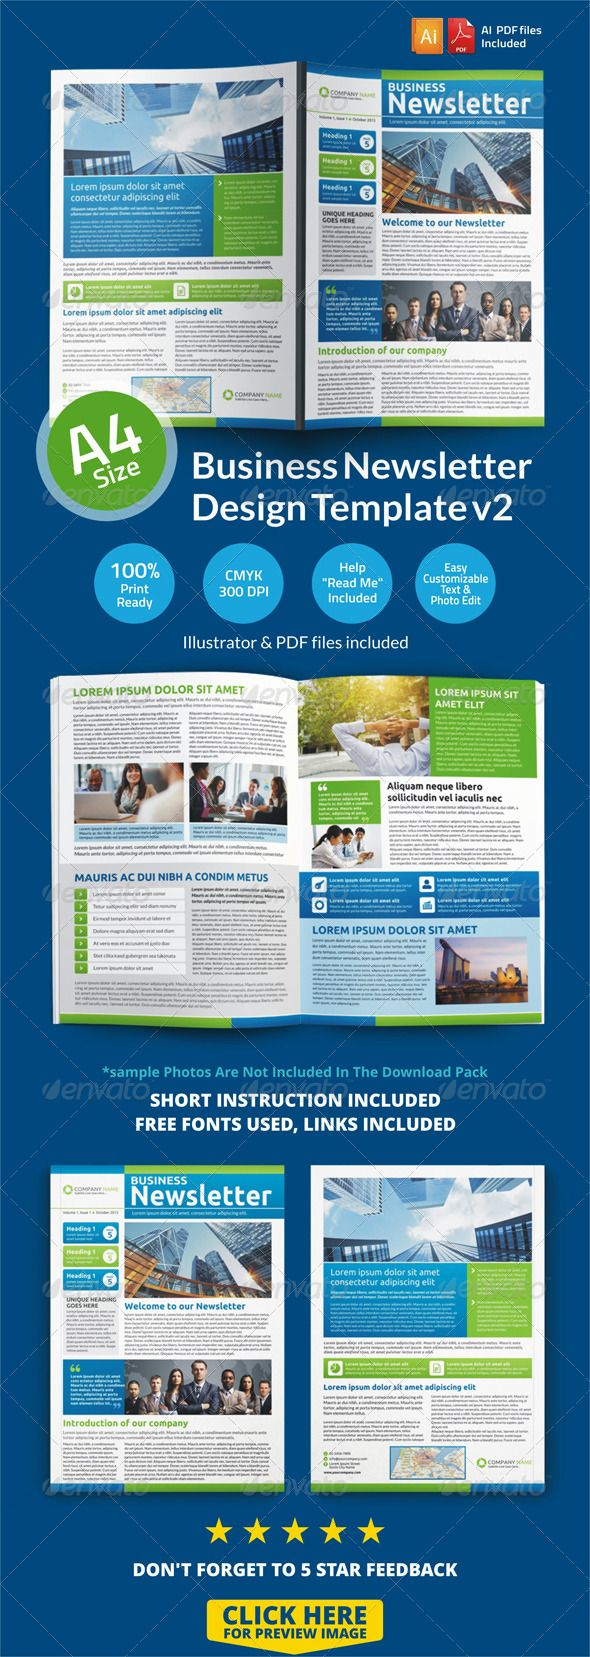 Newsletter Design Template V2 Flyers Pinterest Newsletter